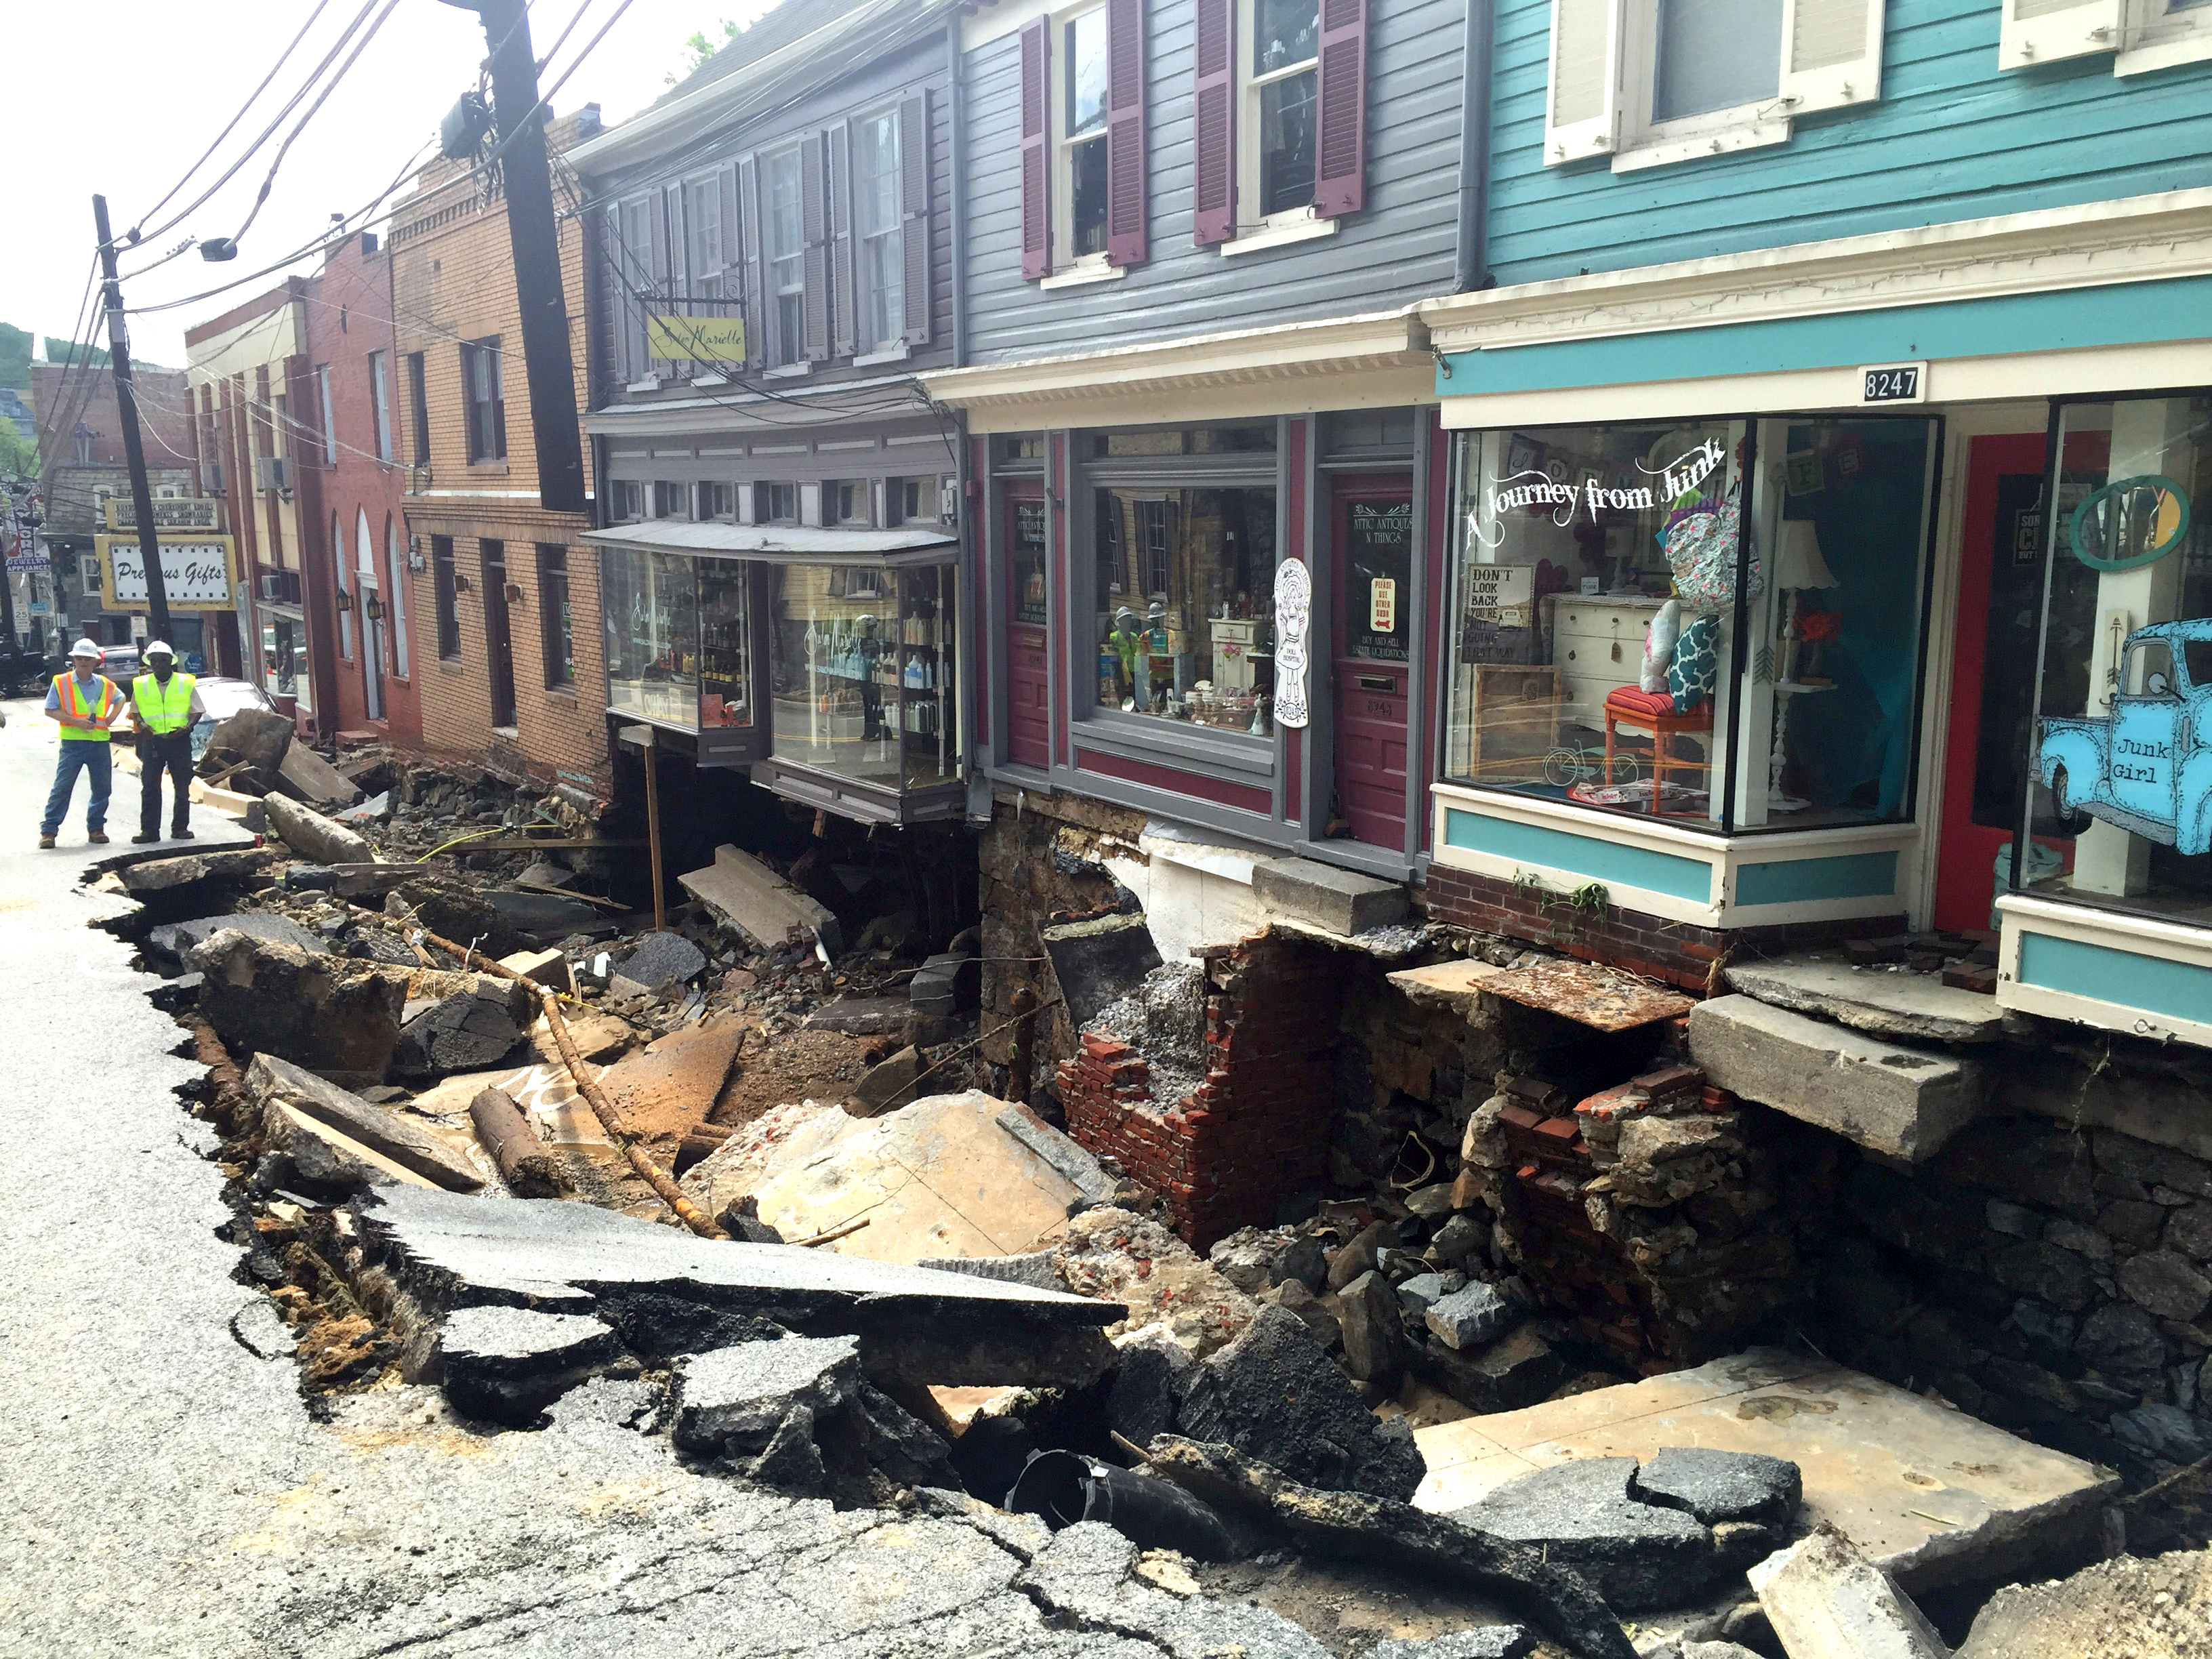 Ellicott City, MD - Historic Maryland Town Faces Long Recovery ...